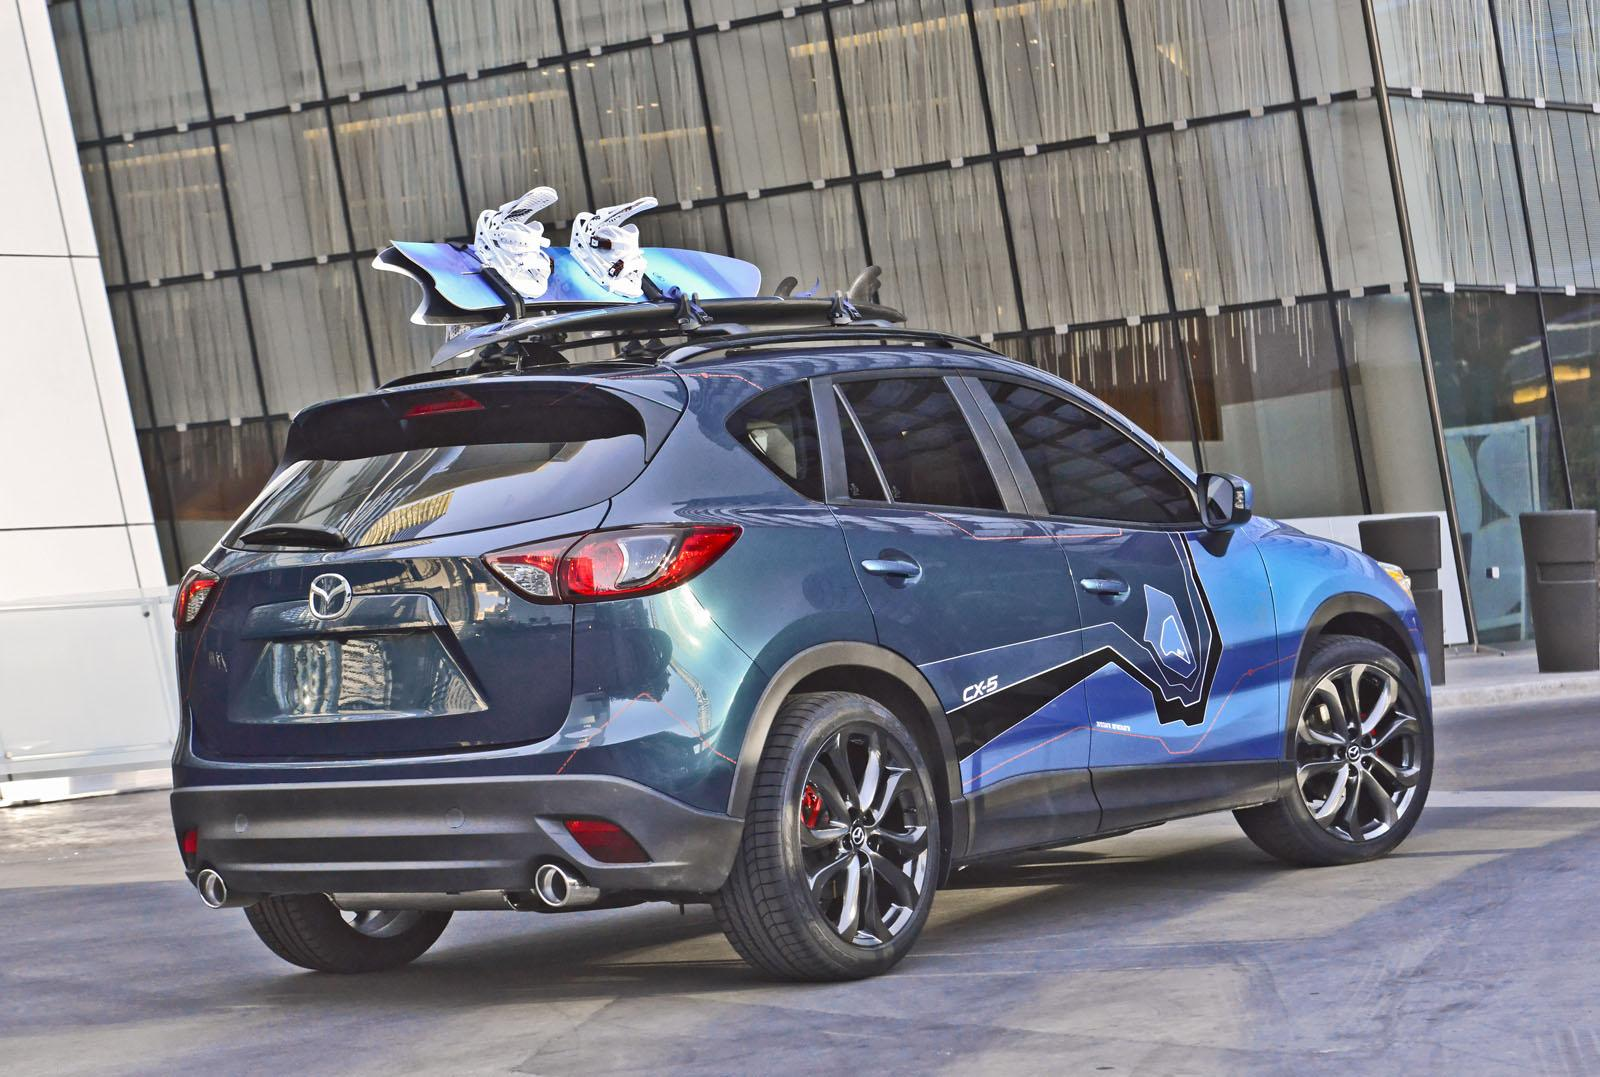 http://s1.cdn.autoevolution.com/images/news/gallery/mazda-cx-5-180-attends-sema-photo-gallery_7.jpg